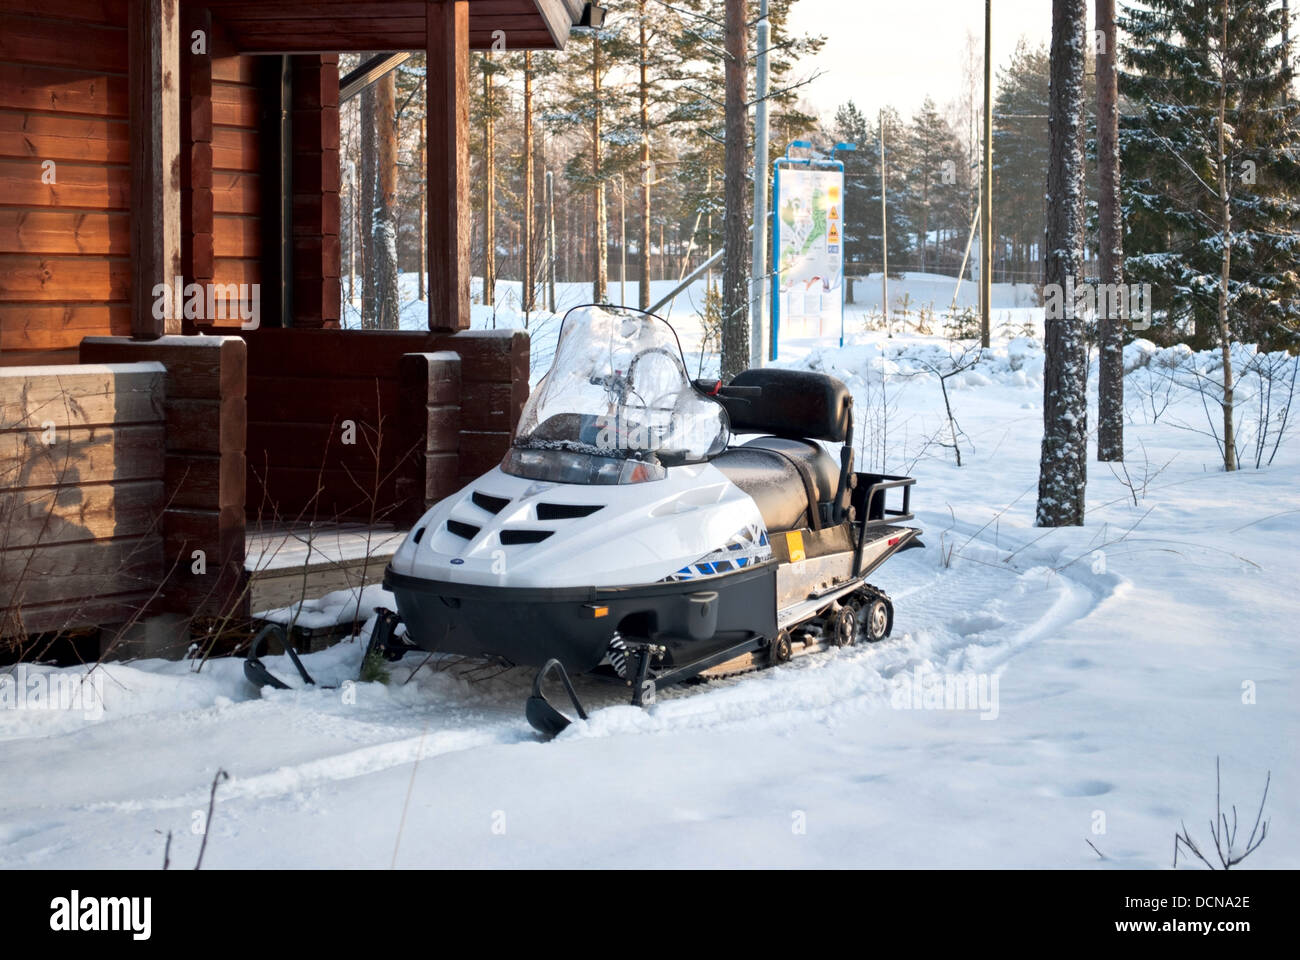 Snowmobiles on holiday at the sports center Vierumaki, Finland. - Stock Image